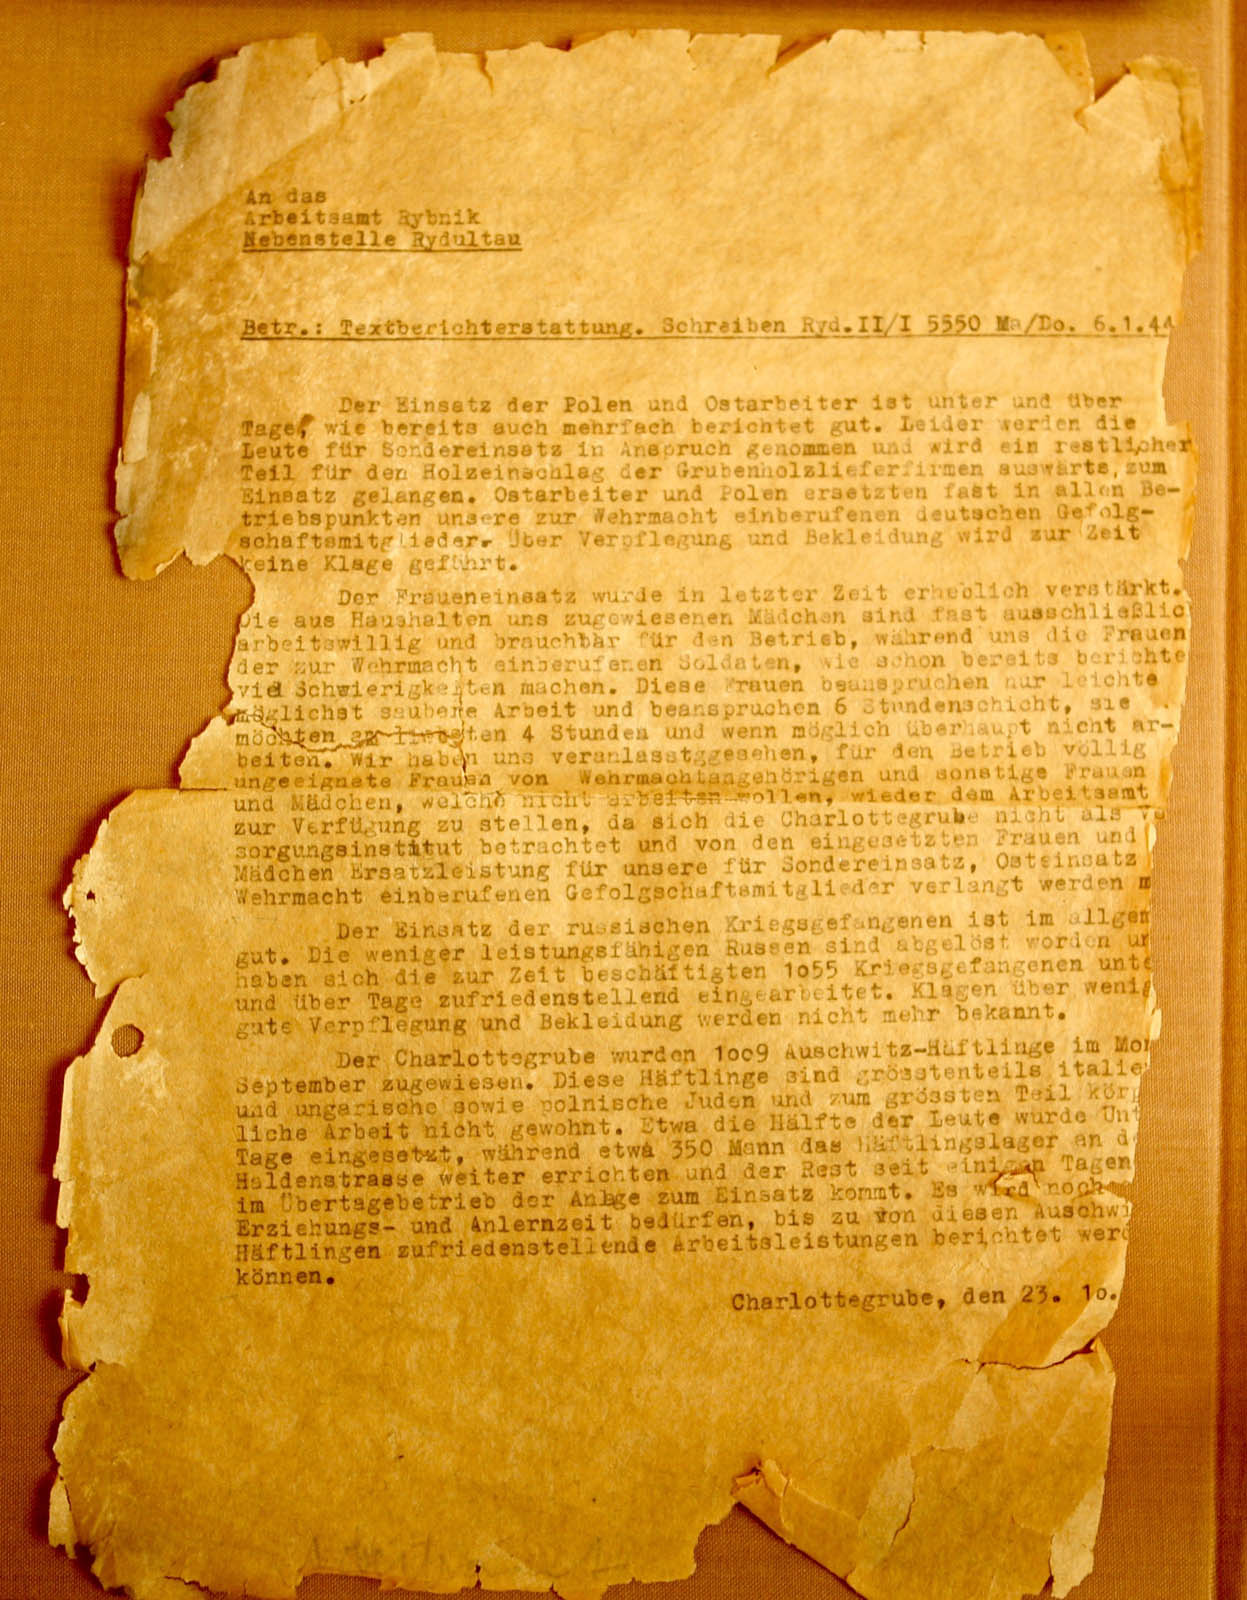 Document on the status of Poles, Ostarbeiter, Russian POWs and Auschwitz prisoners.